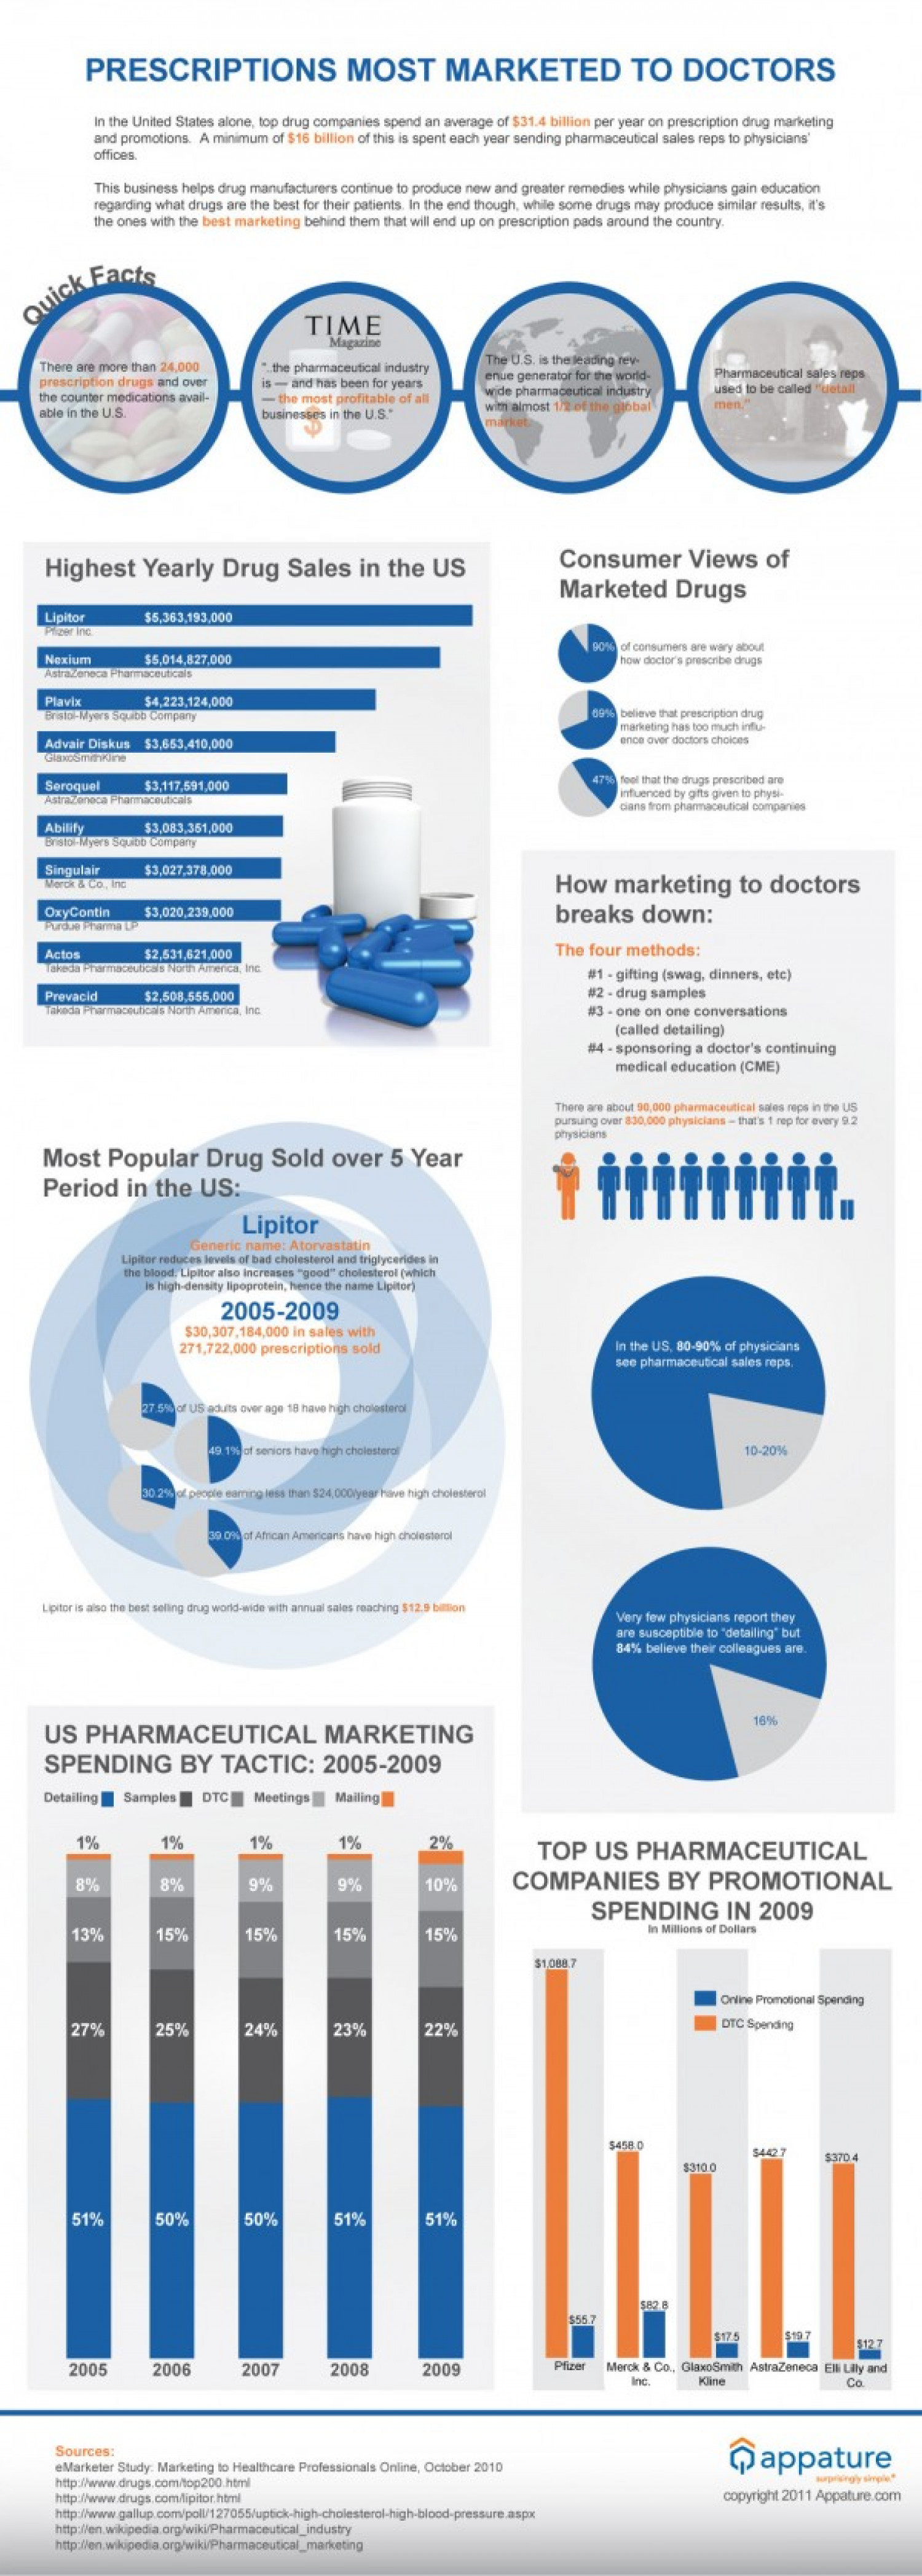 Prescriptions Most Marketed to Doctors Infographic